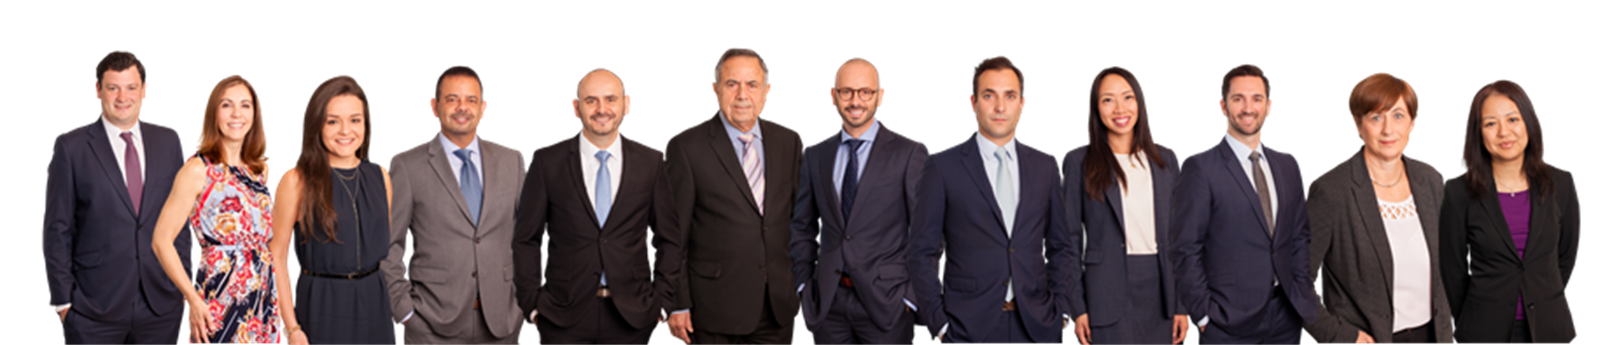 the consulting house team - benefits alliance member